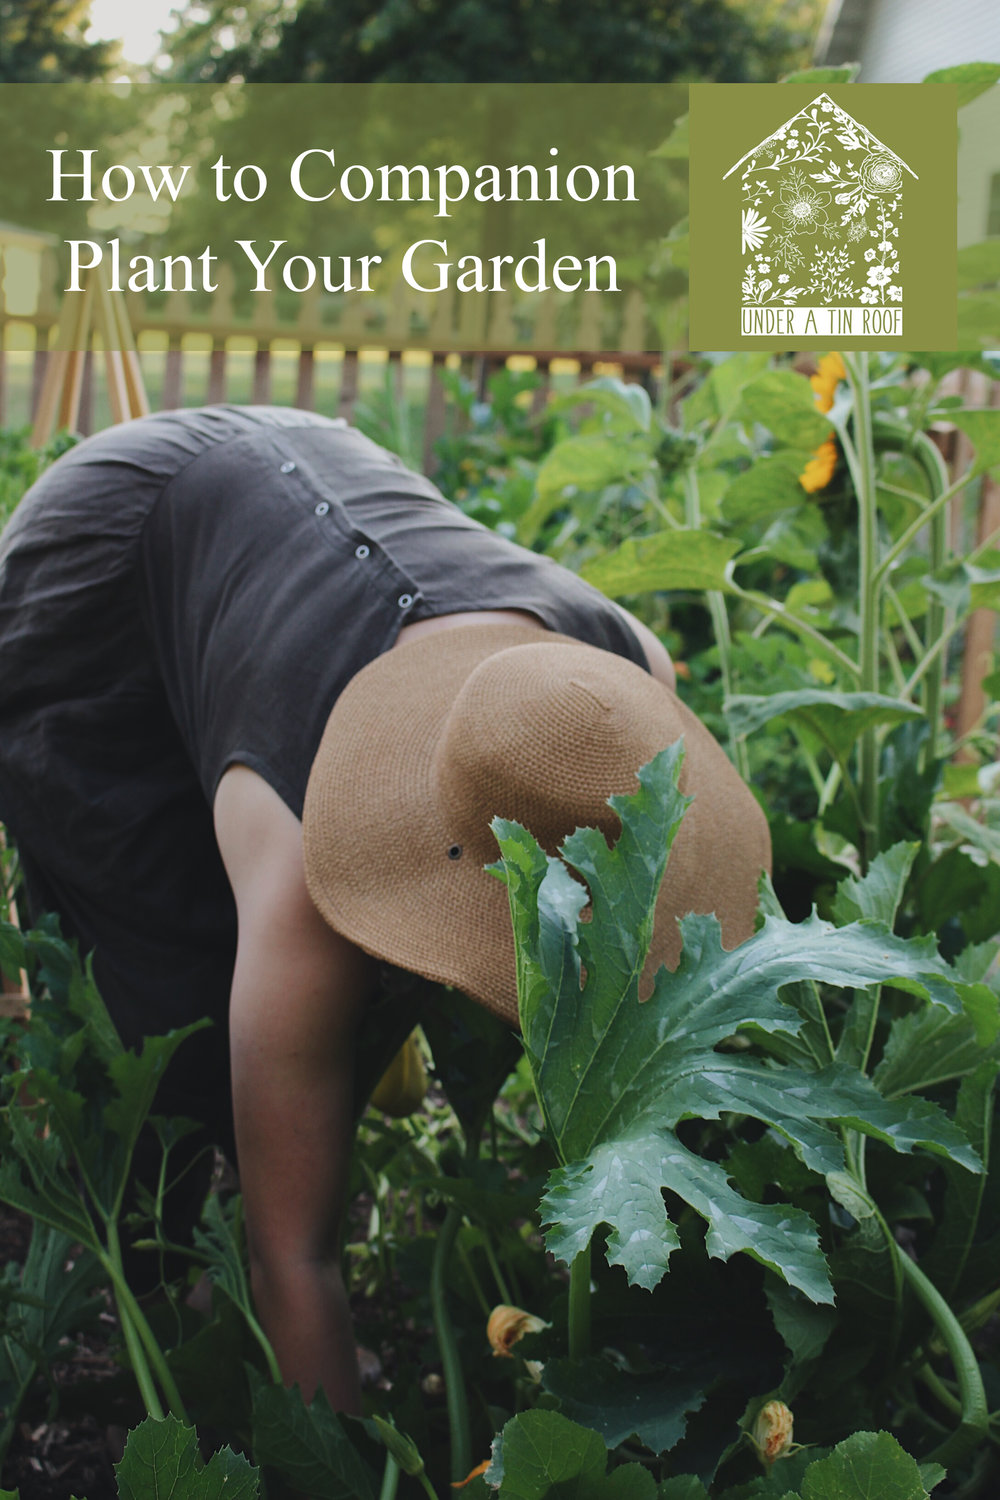 Companions or Antagonists? A Complete Guide to Companion Planting - Under A Tin Roof Blog